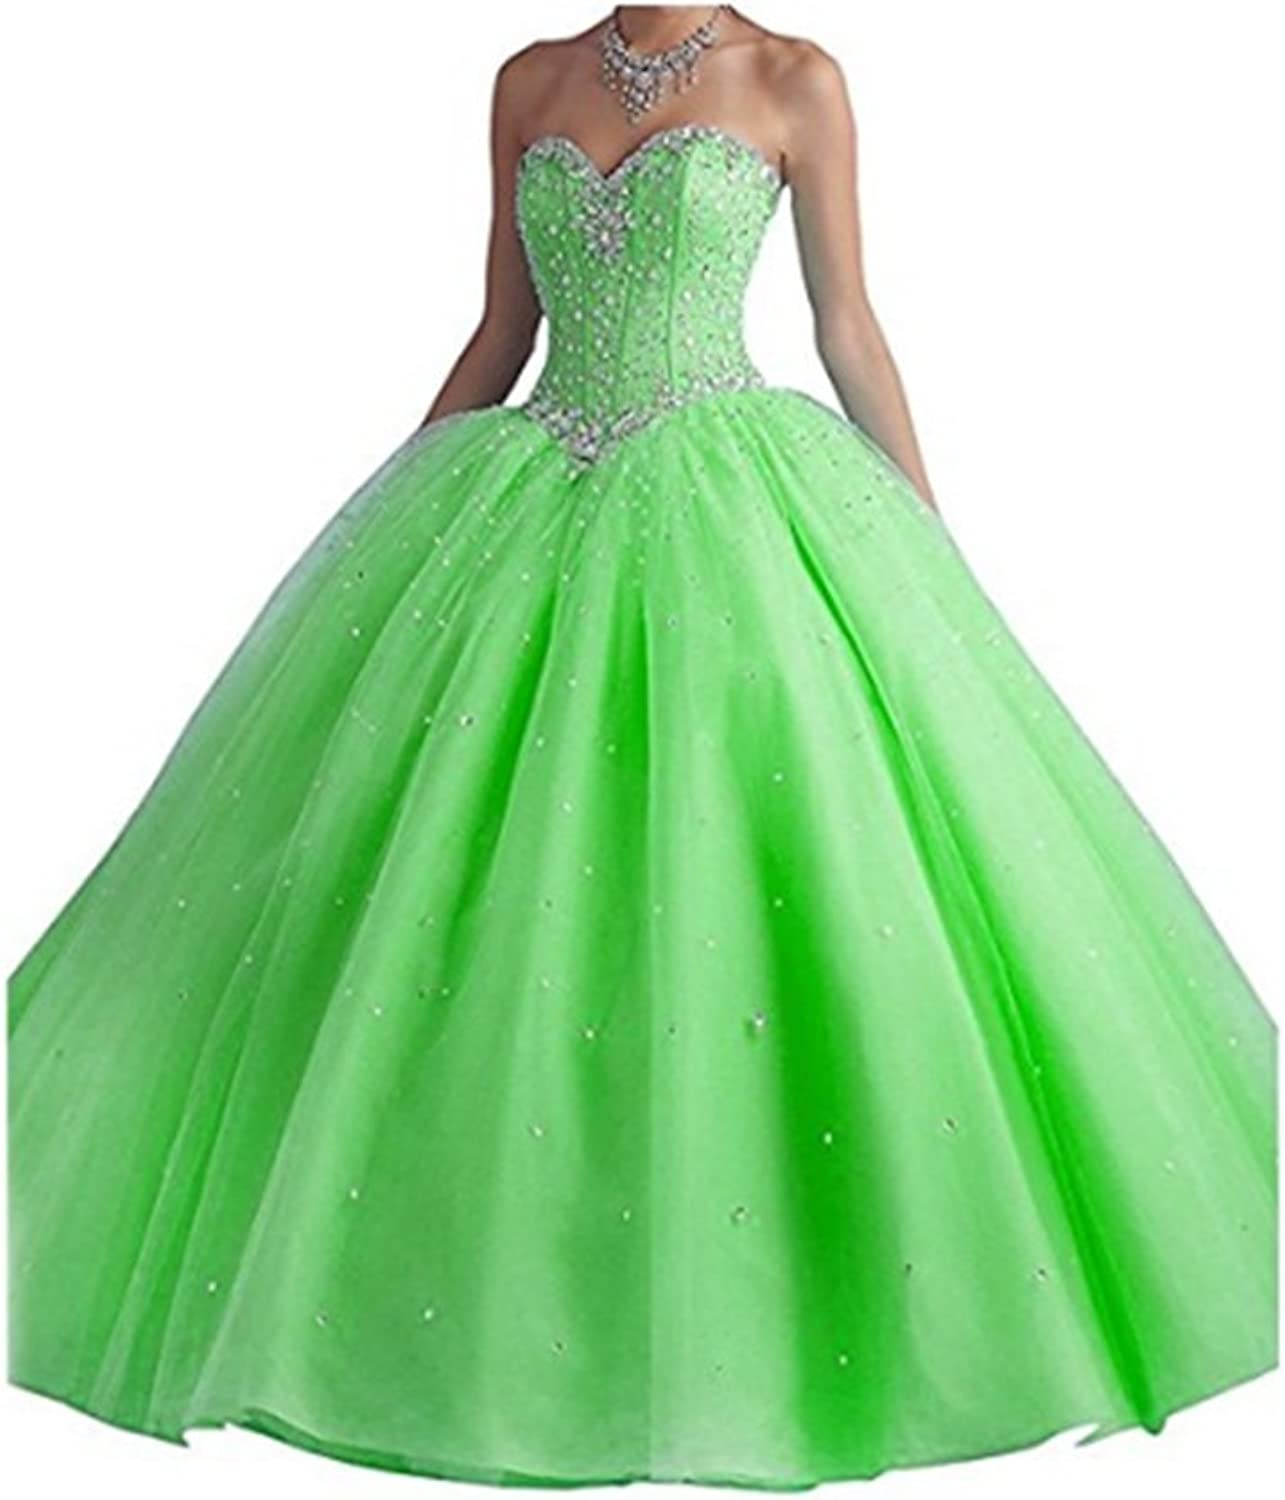 ANGELA Women's Long Prom Dress Beads Ball Gown Tulle Quinceanera Dress